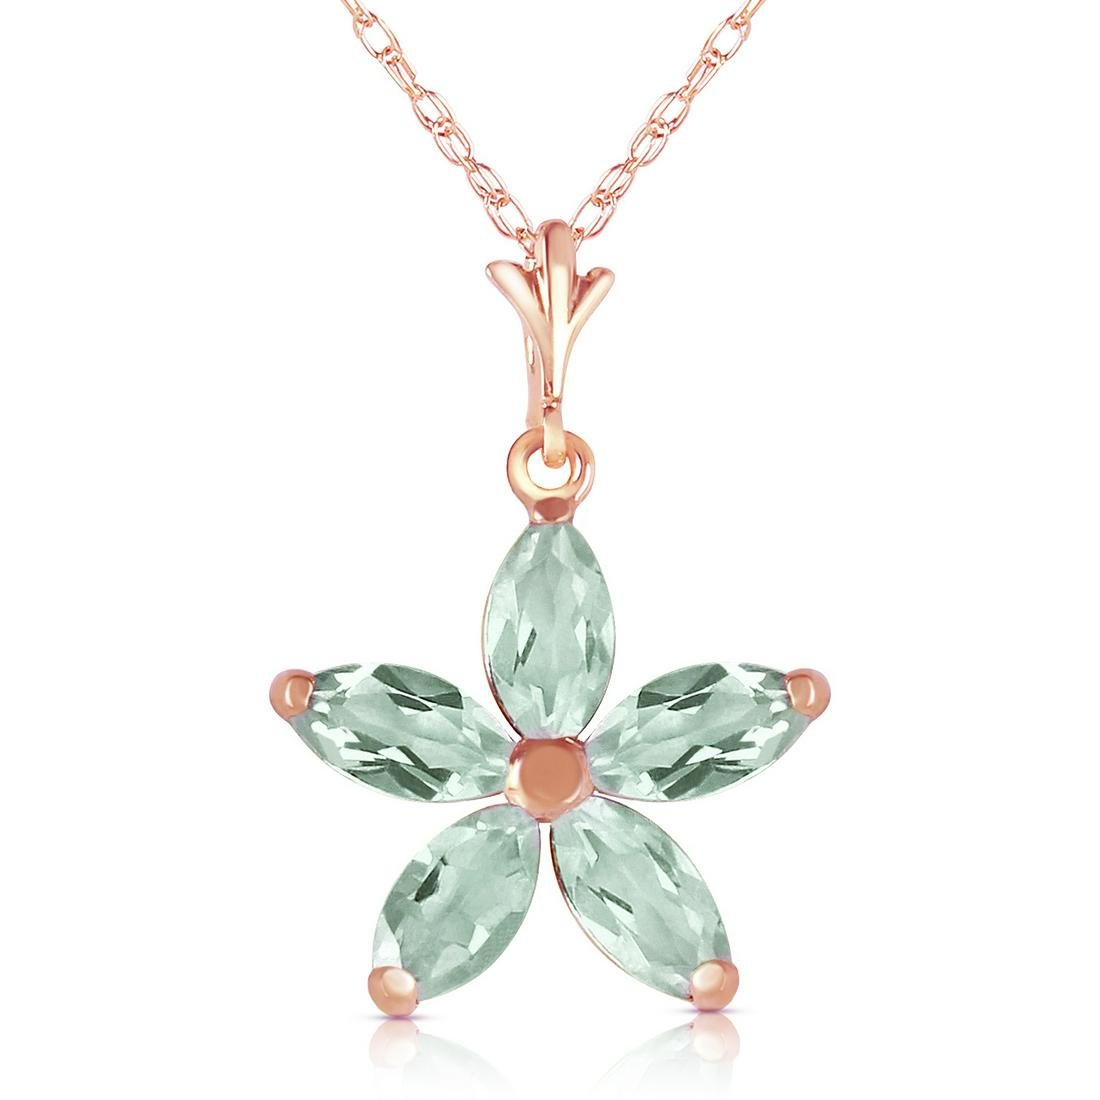 Genuine 1.40 ctw Green Amethyst Necklace Jewelry 14KT